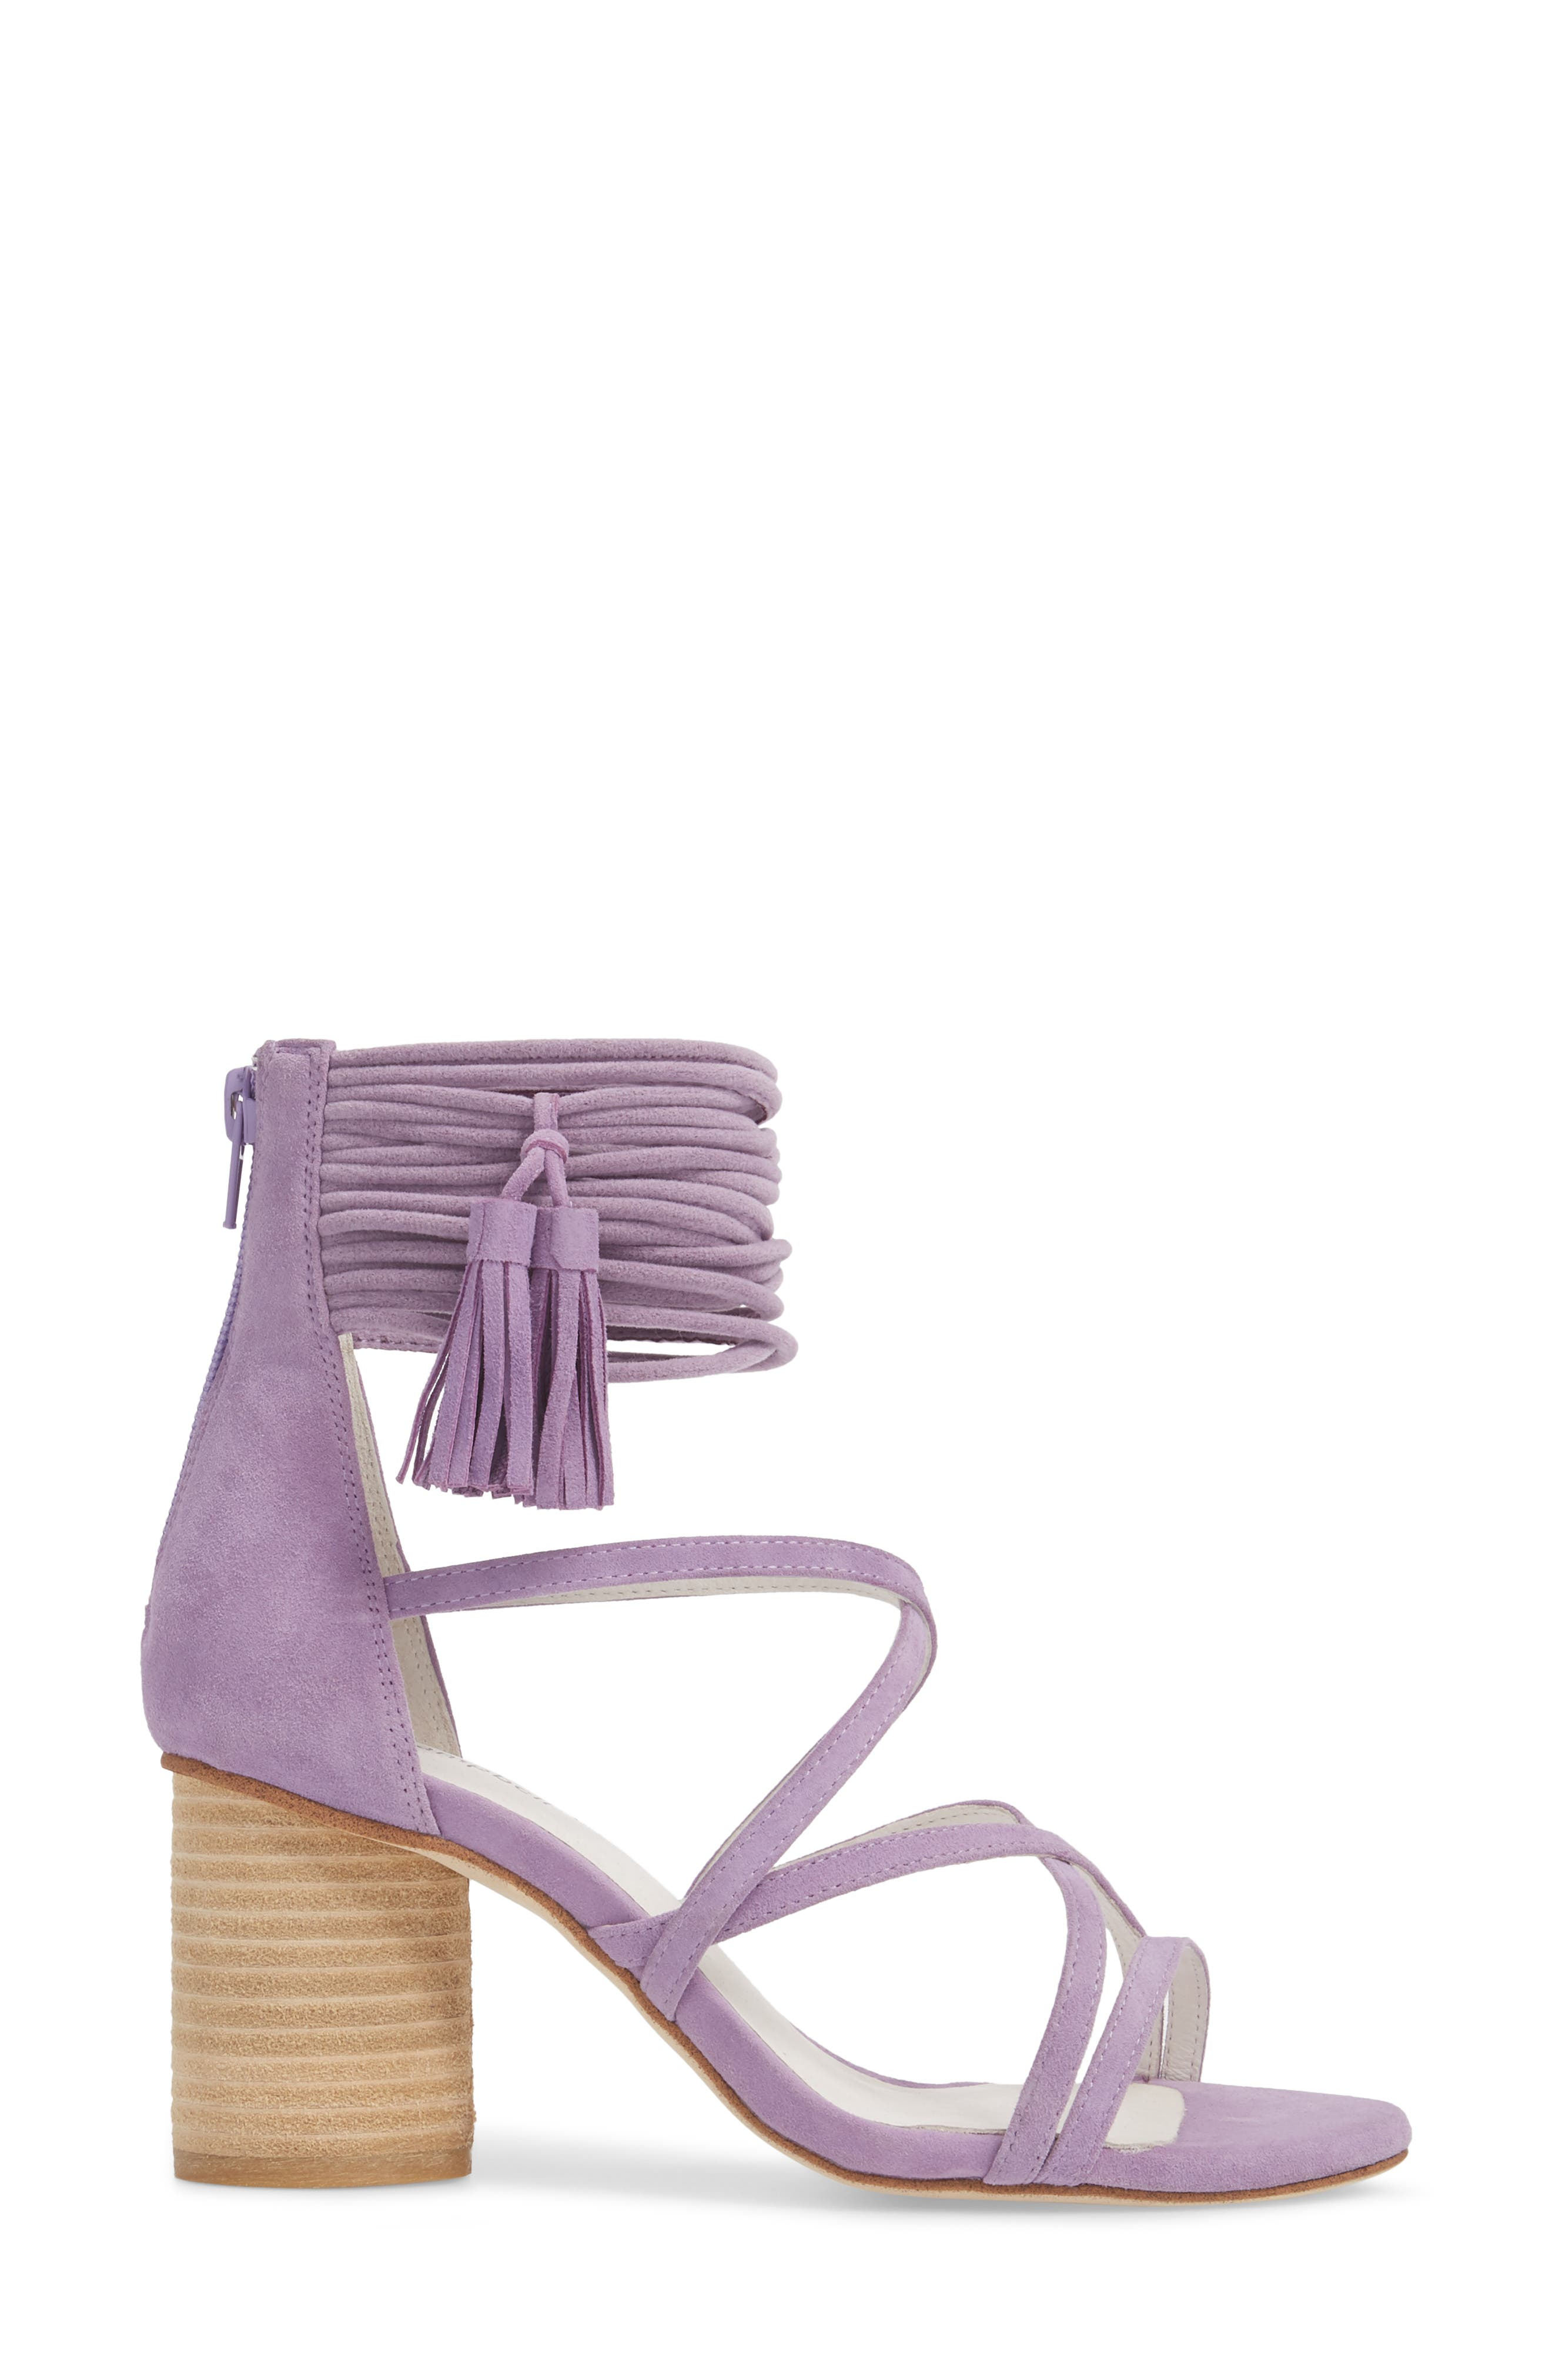 'Despina' Strappy Sandal,                             Alternate thumbnail 3, color,                             532